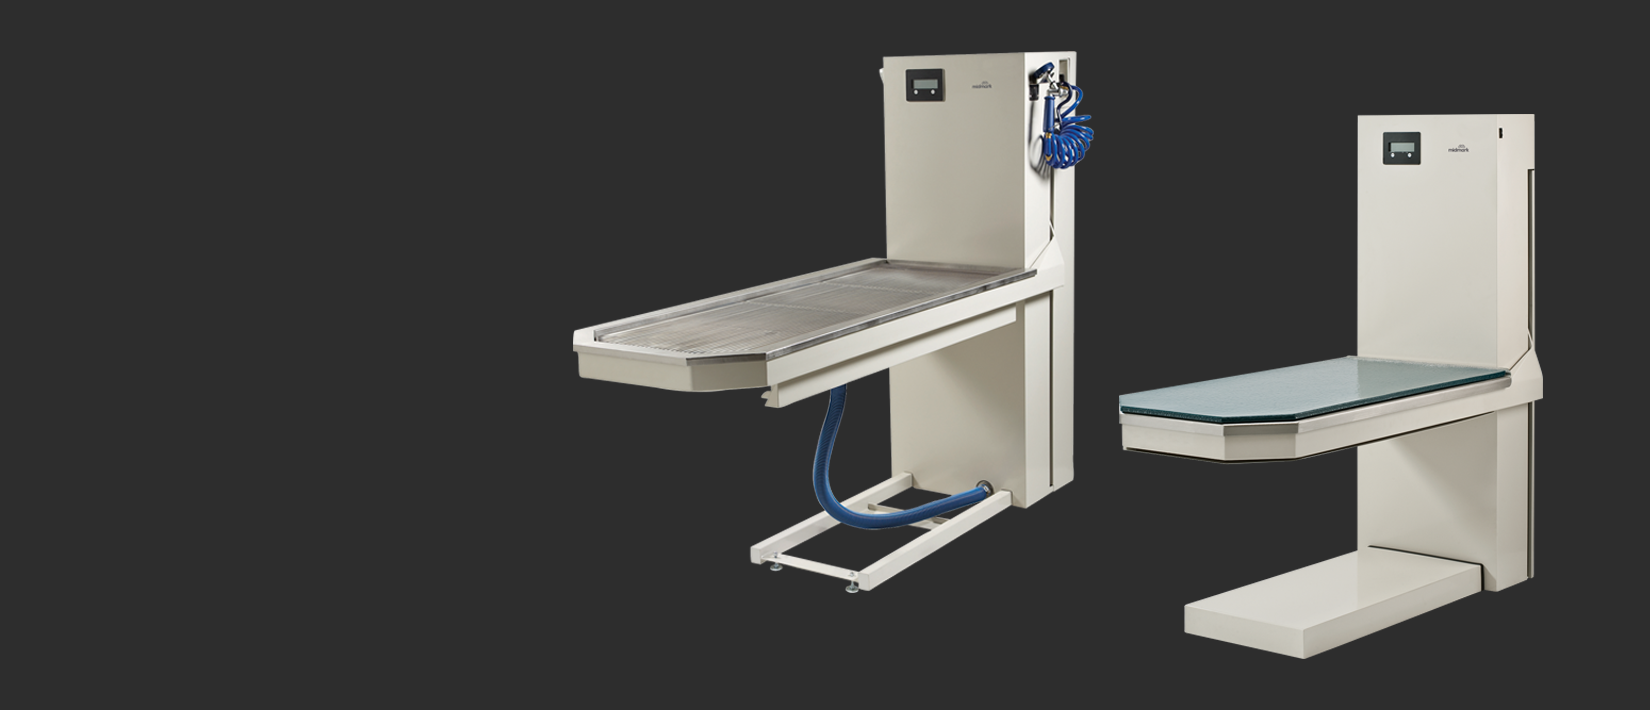 lift-table-promo-header-desktop